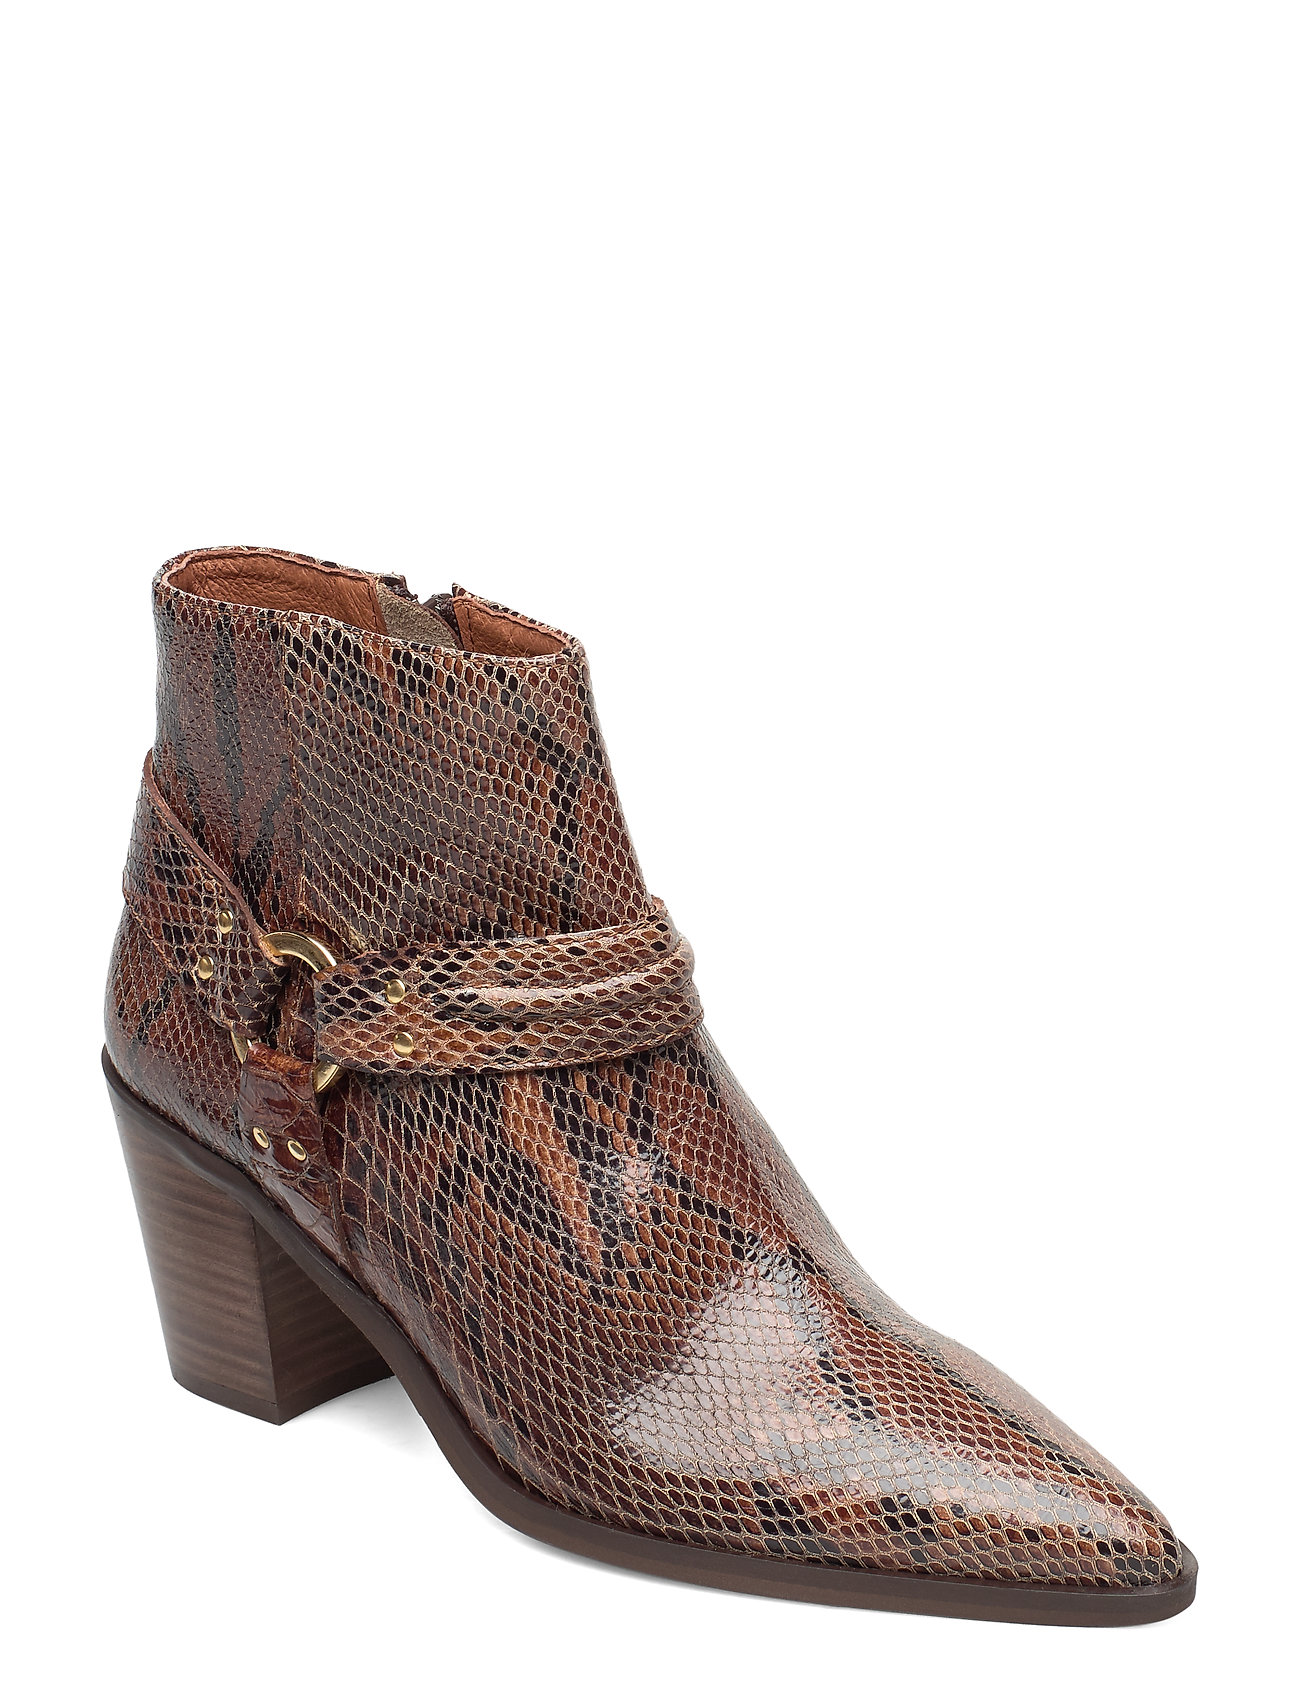 Image of Booties 3722 Shoes Boots Ankle Boots Ankle Boot - Heel Brun Billi Bi (3406199929)